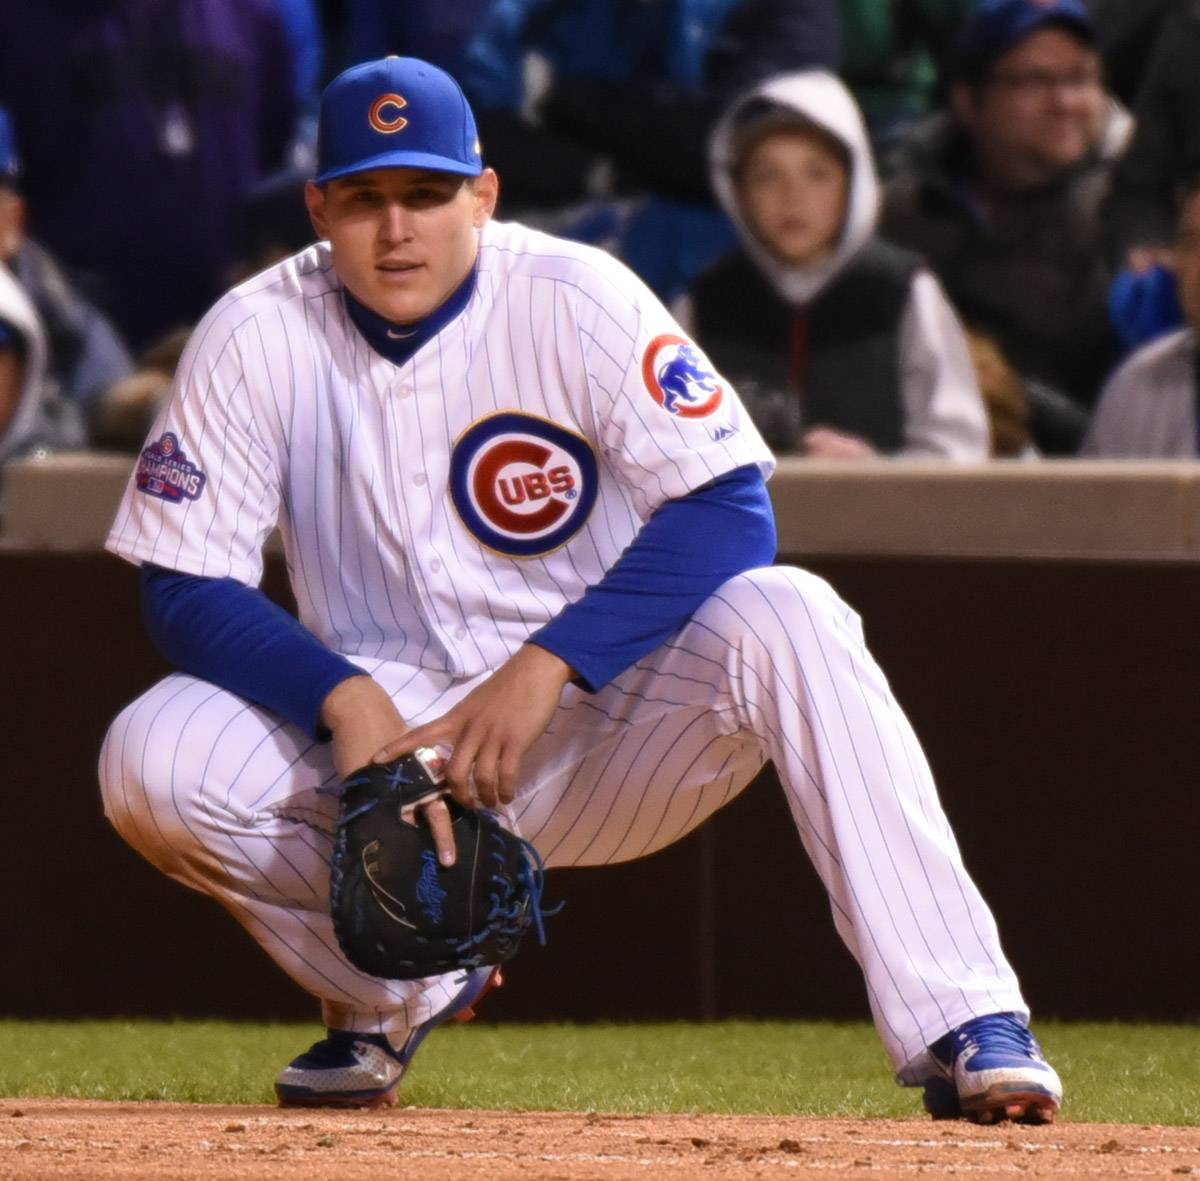 The defensive skills of Chicago Cubs first baseman Anthony Rizzo, above, and second baseman Javier Baez give manager Joe Maddon a lot of options to deploy in the field.